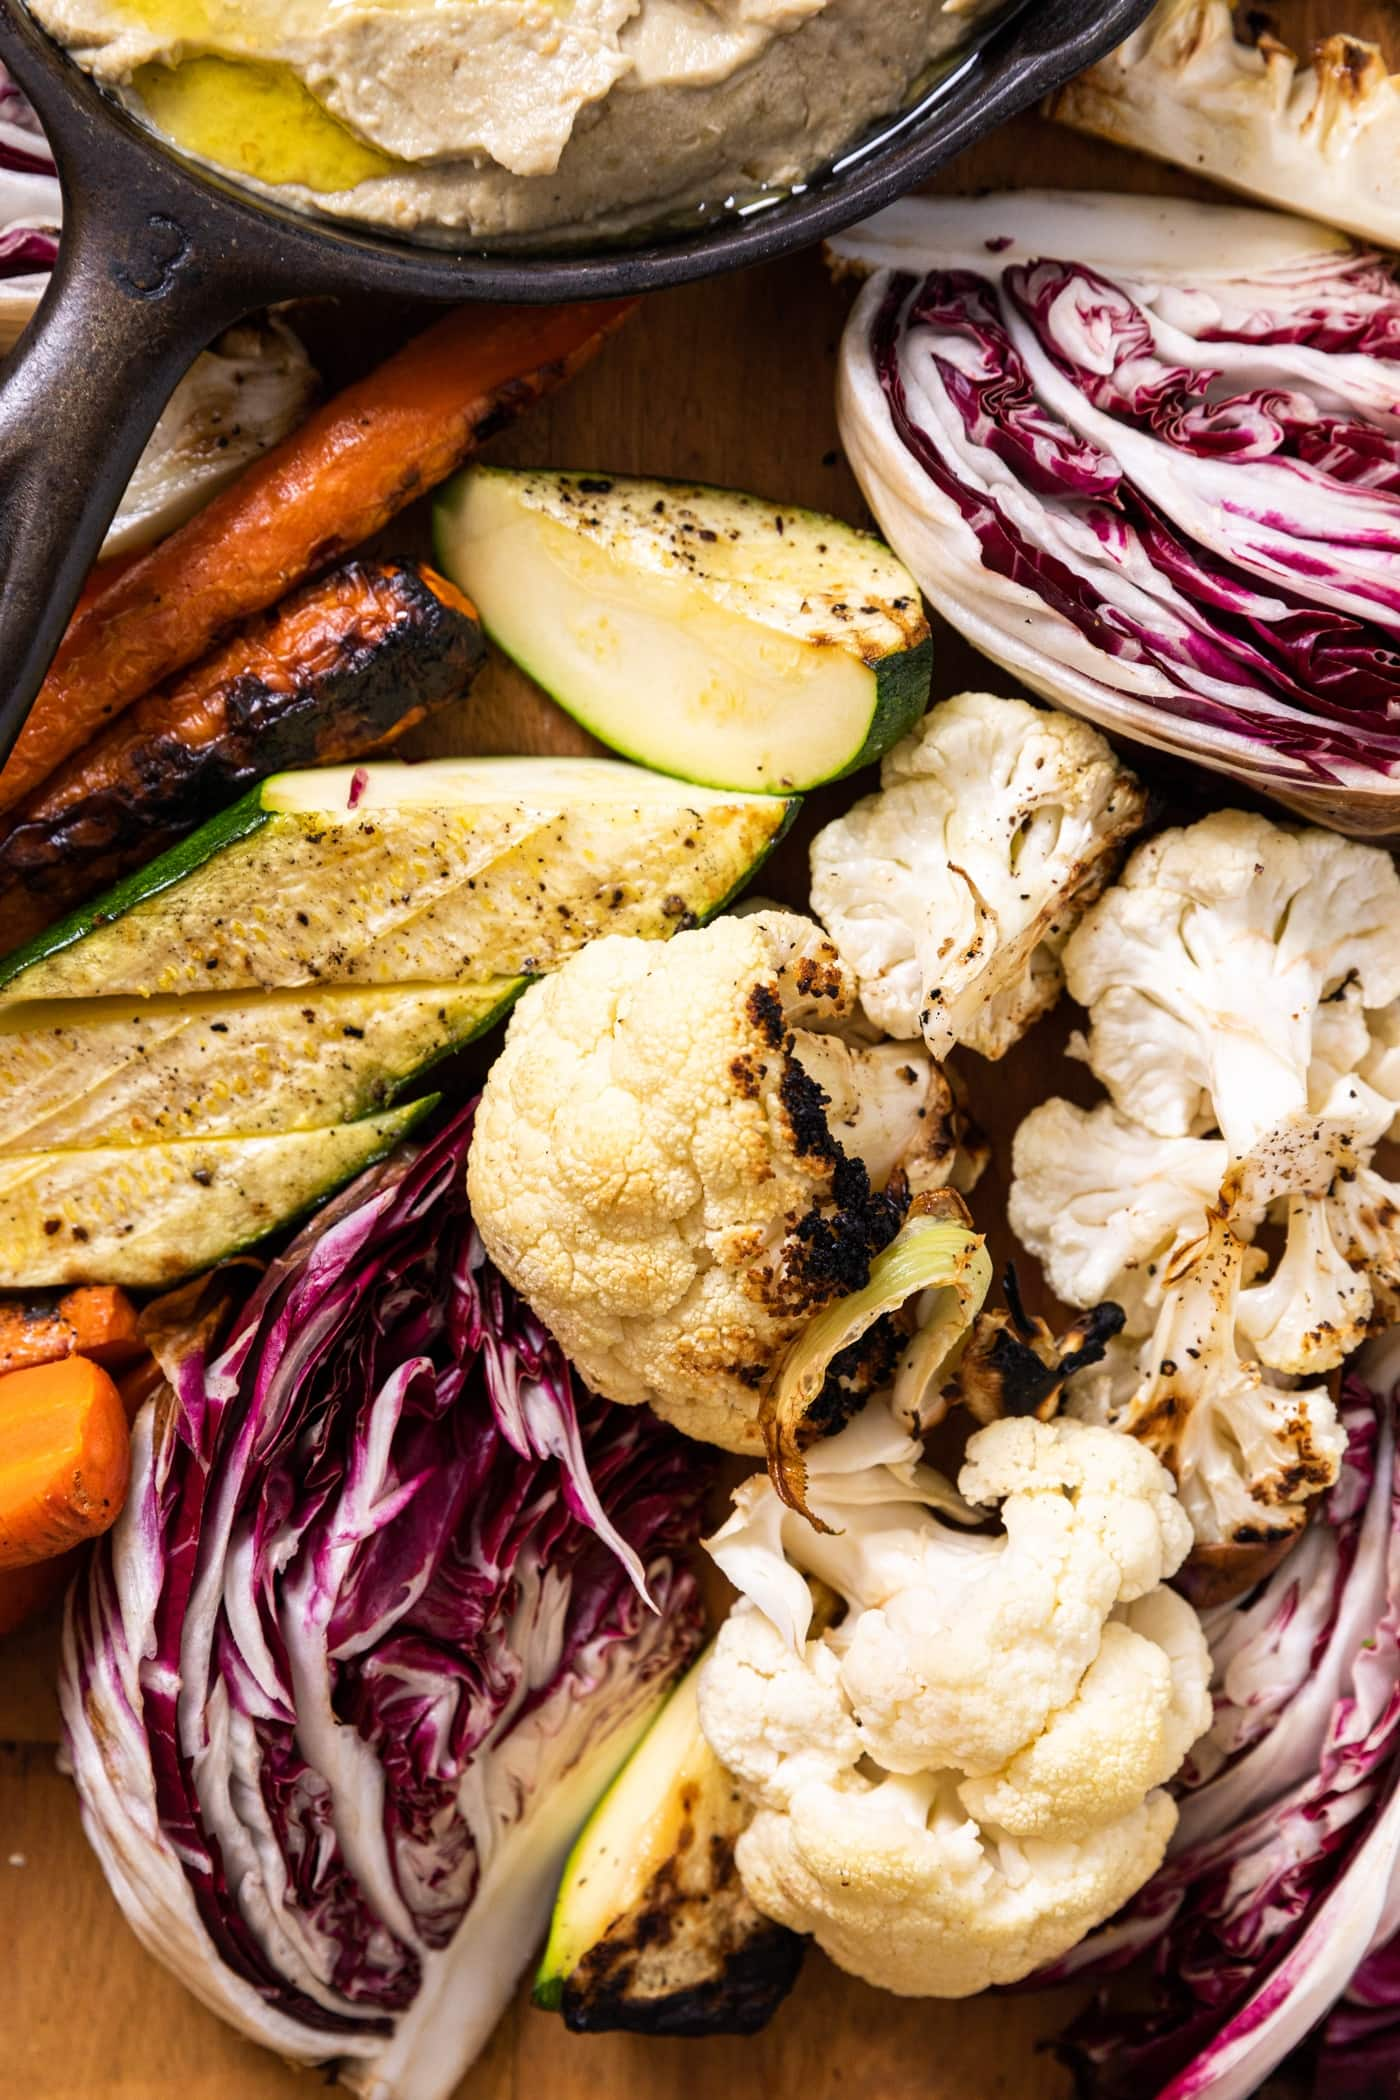 Assortment of grilled vegetables including zucchini, cauliflower, and carrots sitting on wood board